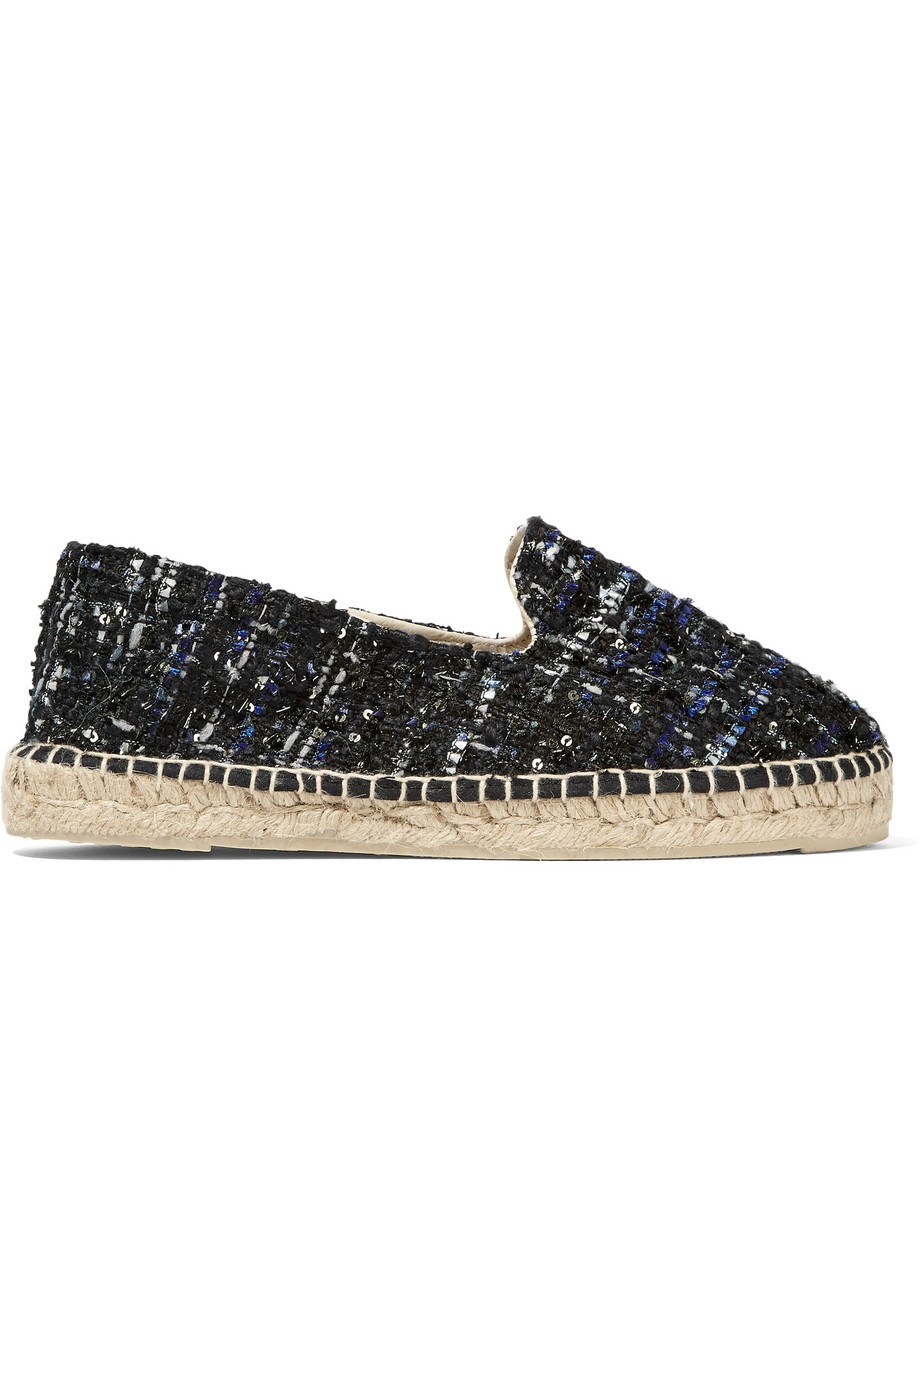 Manebi Paris Tweed Espadrilles, Navy, Women's US Size: 5.5, Size: 36